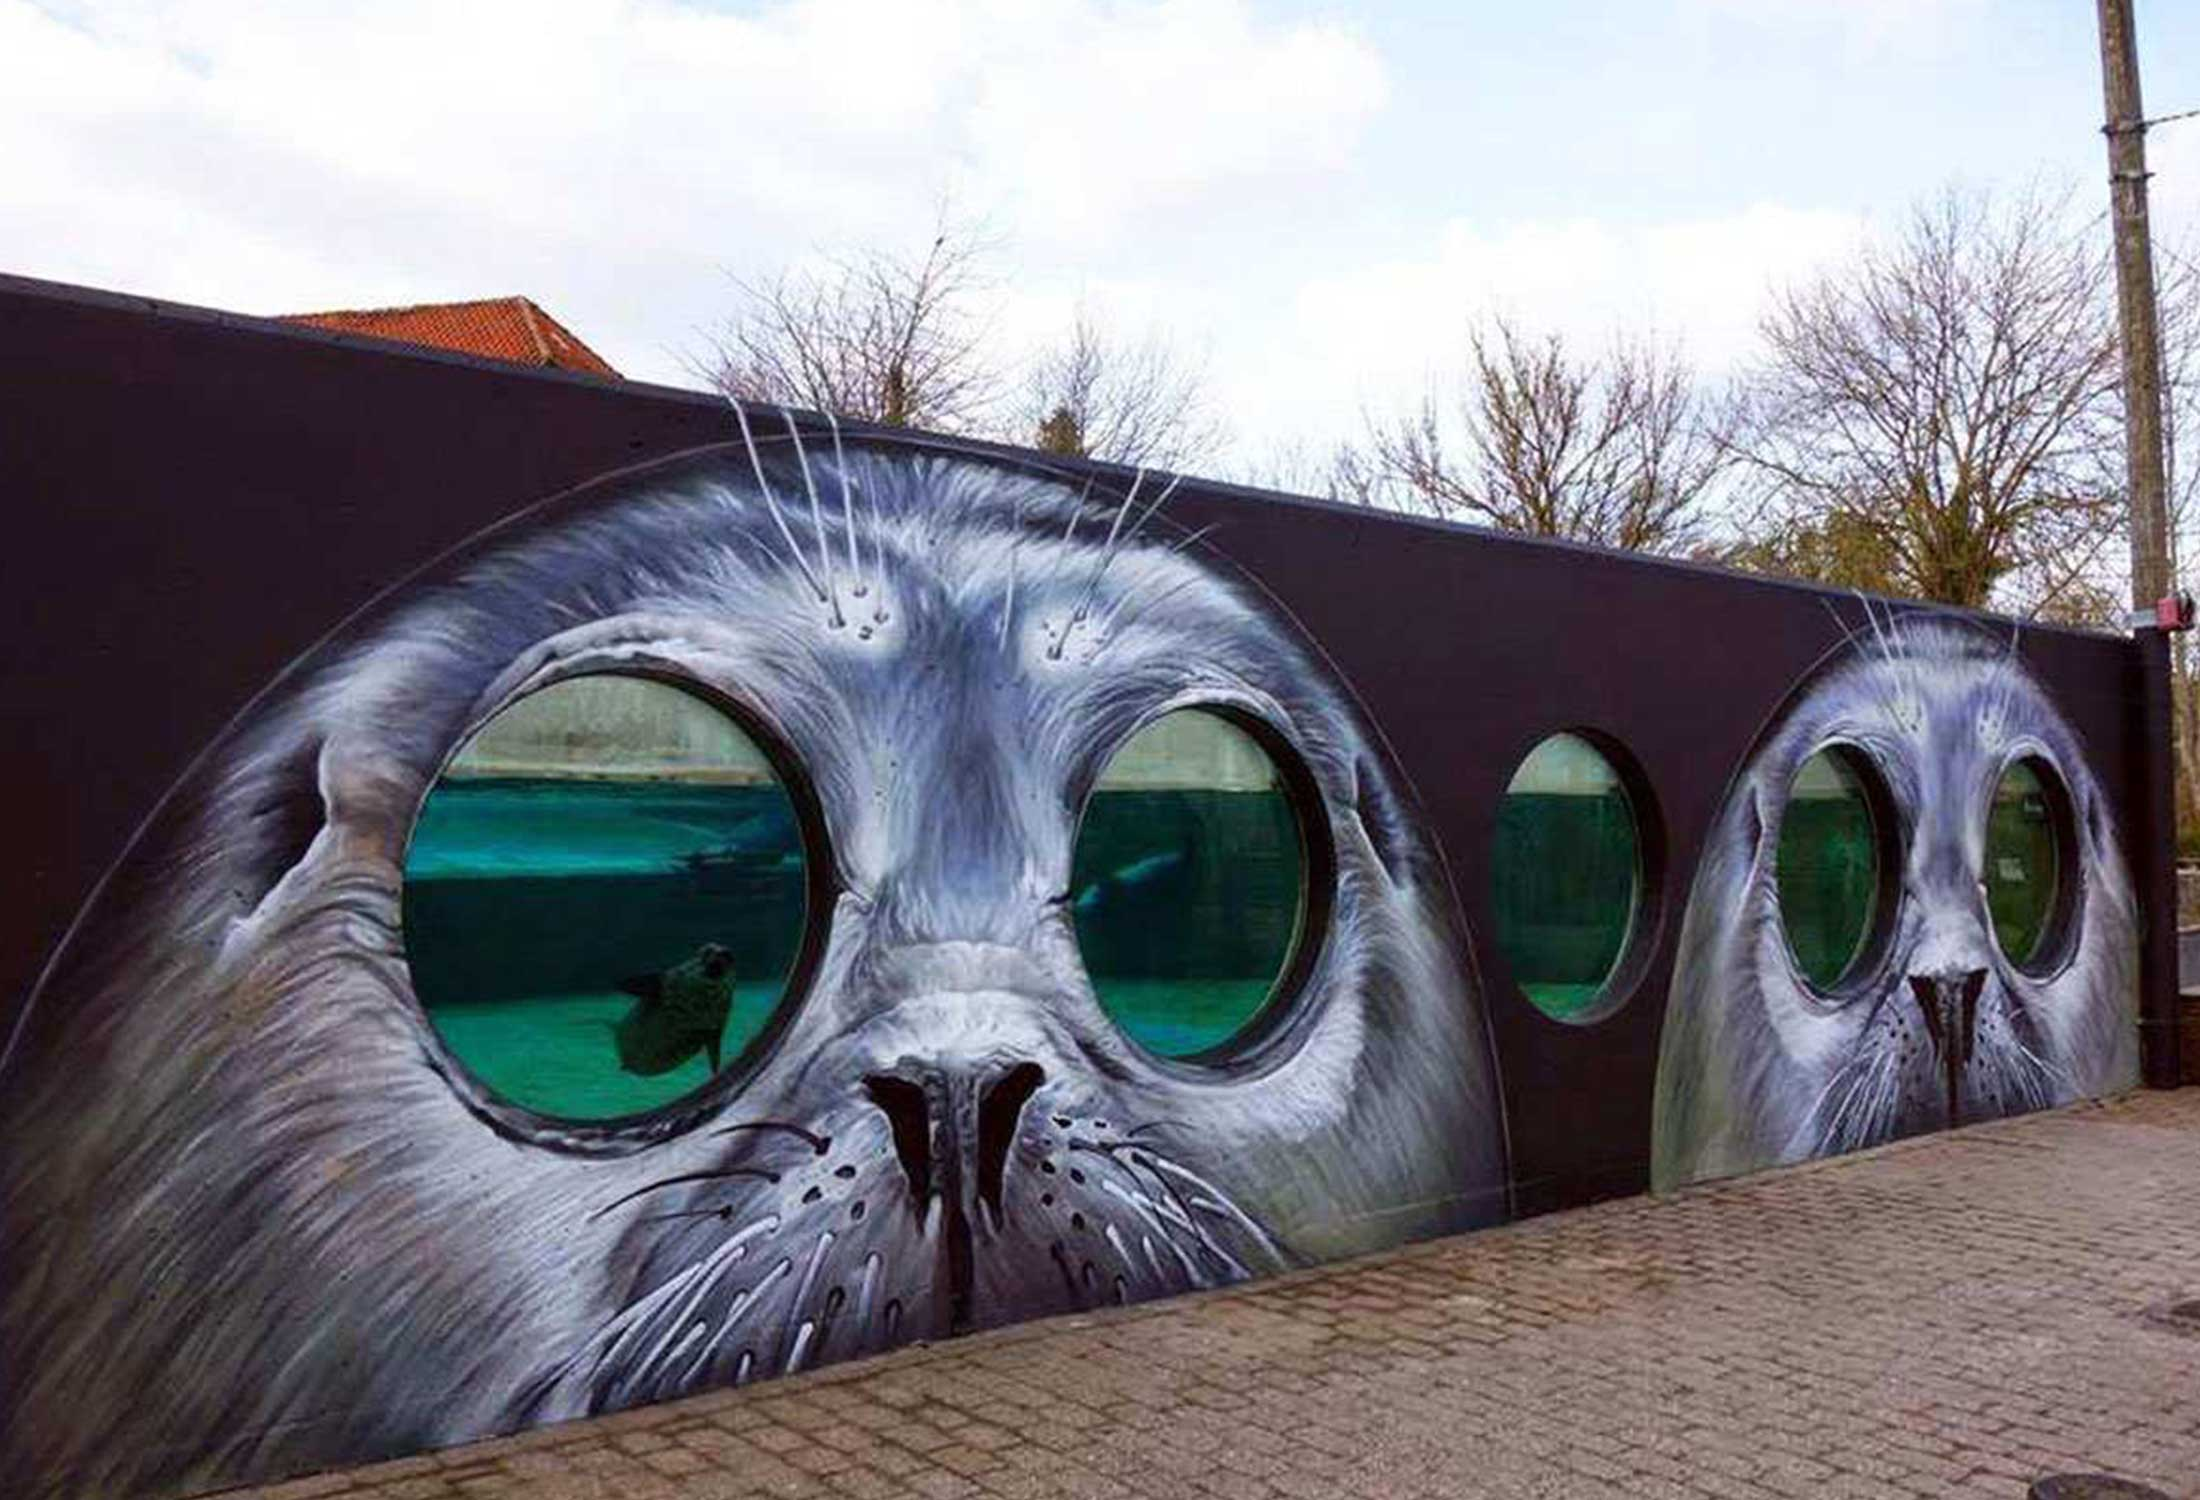 Tasso's seal mural at Odense Zoo in Denmark uses a unique technique to show the seal habitat.